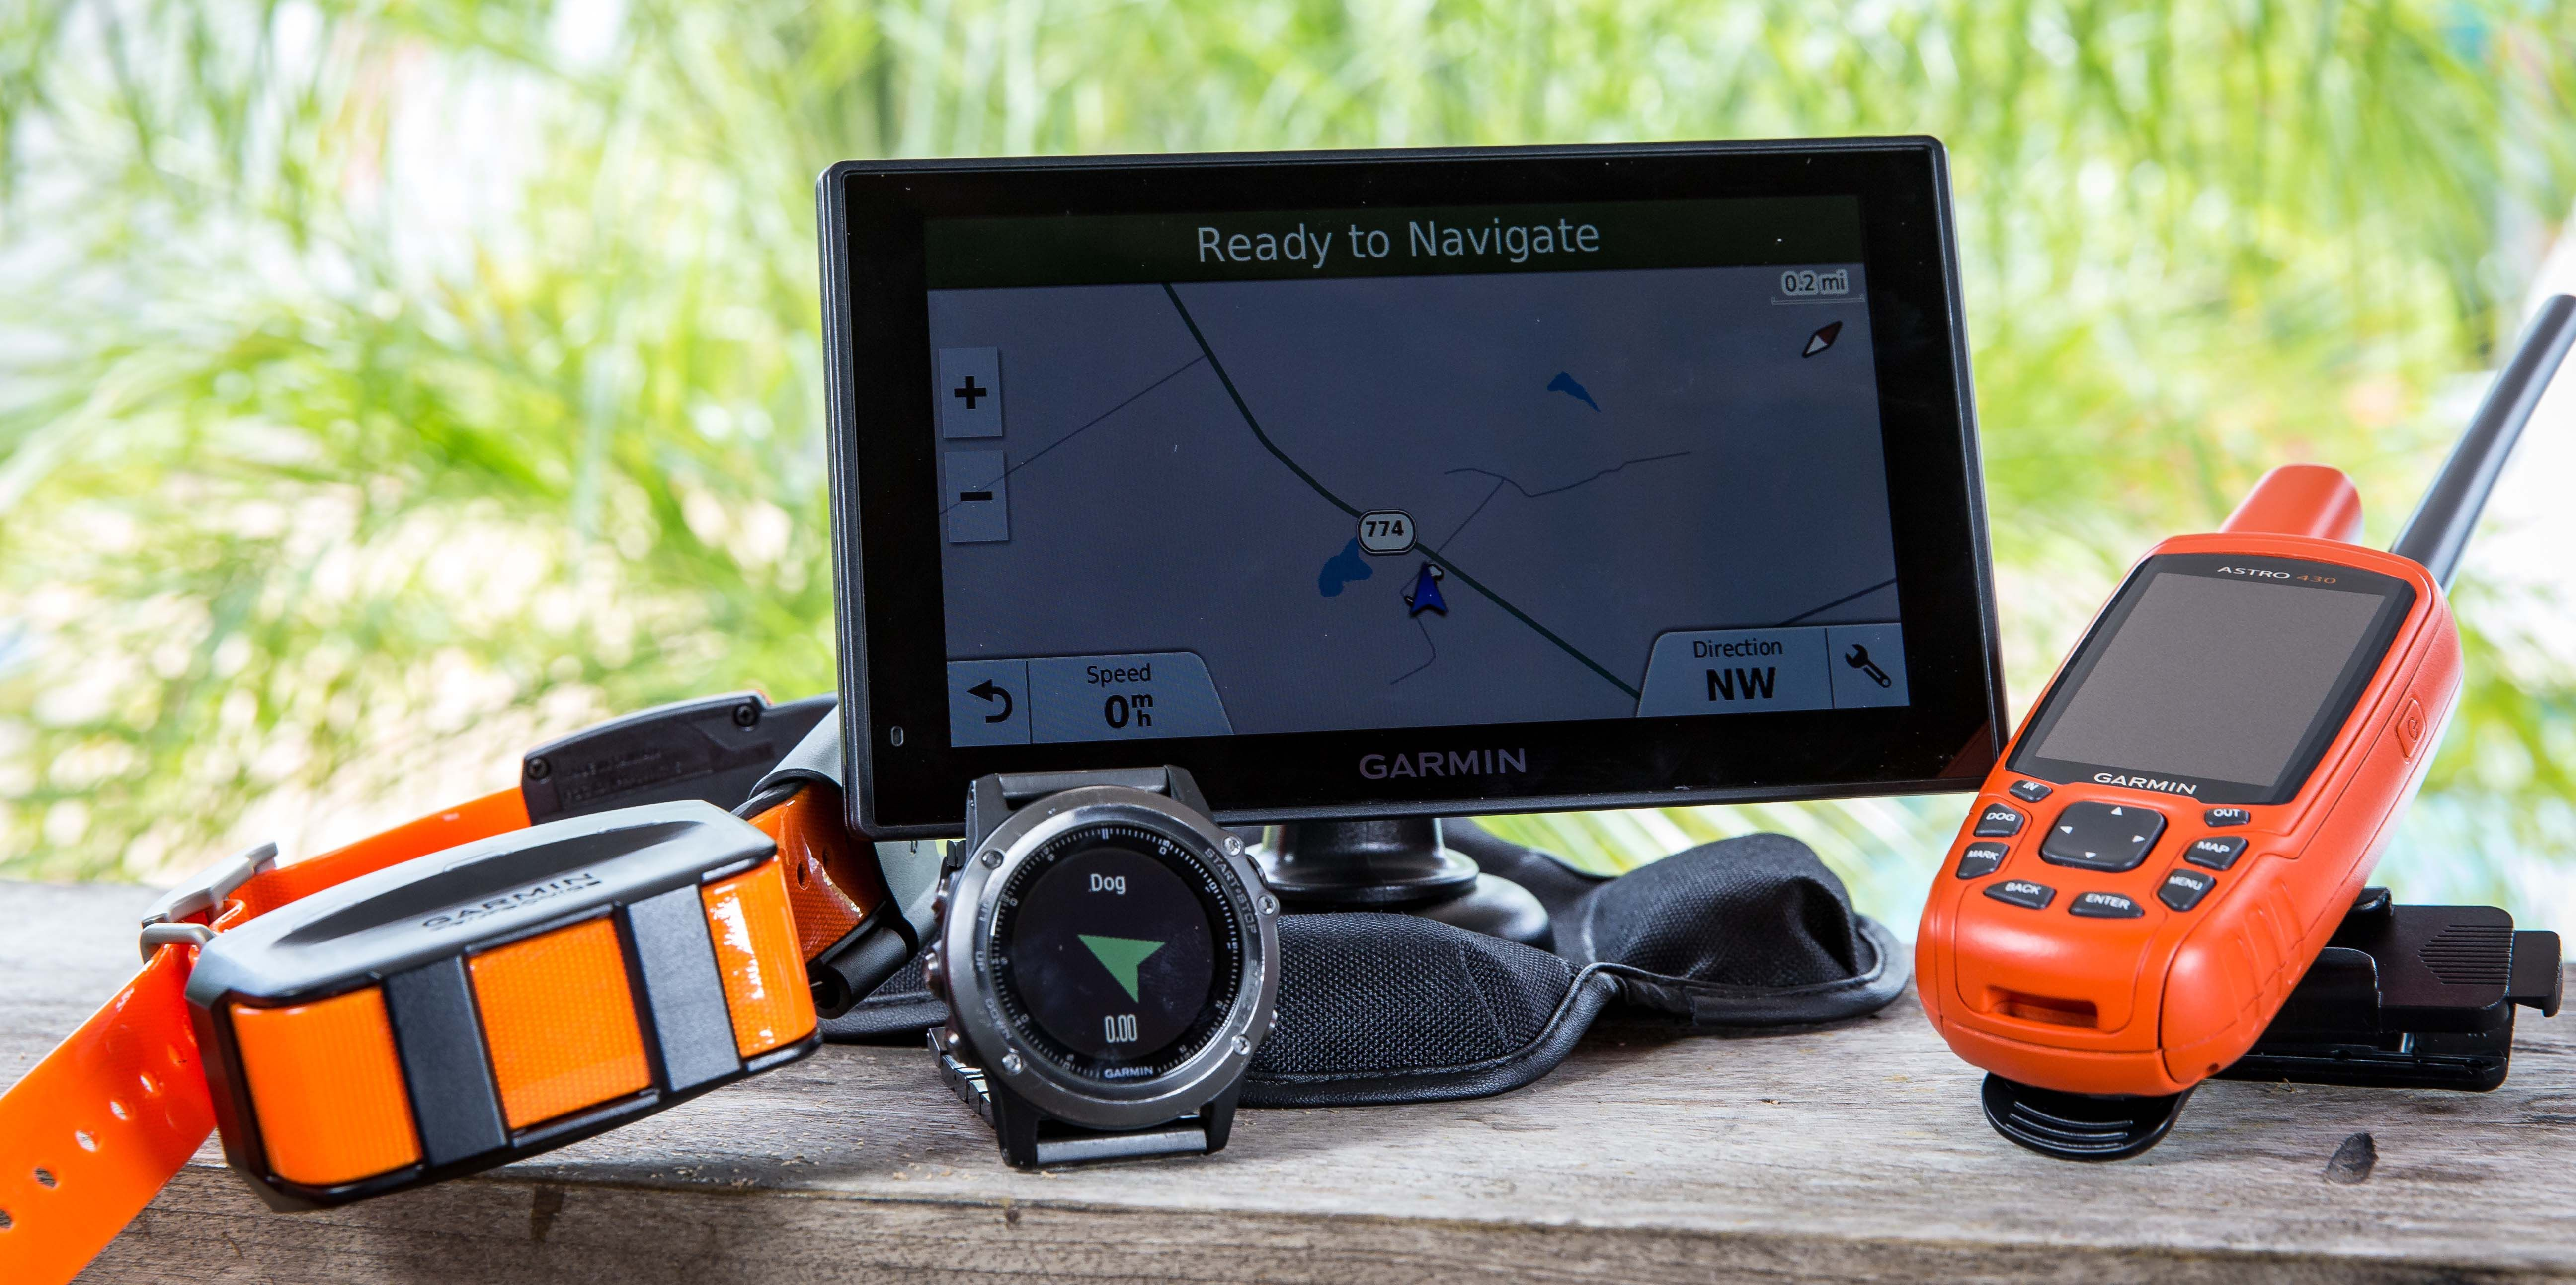 Garmin Introduces Next Gen Gps Dog Tracking Gps Tracking Dogs